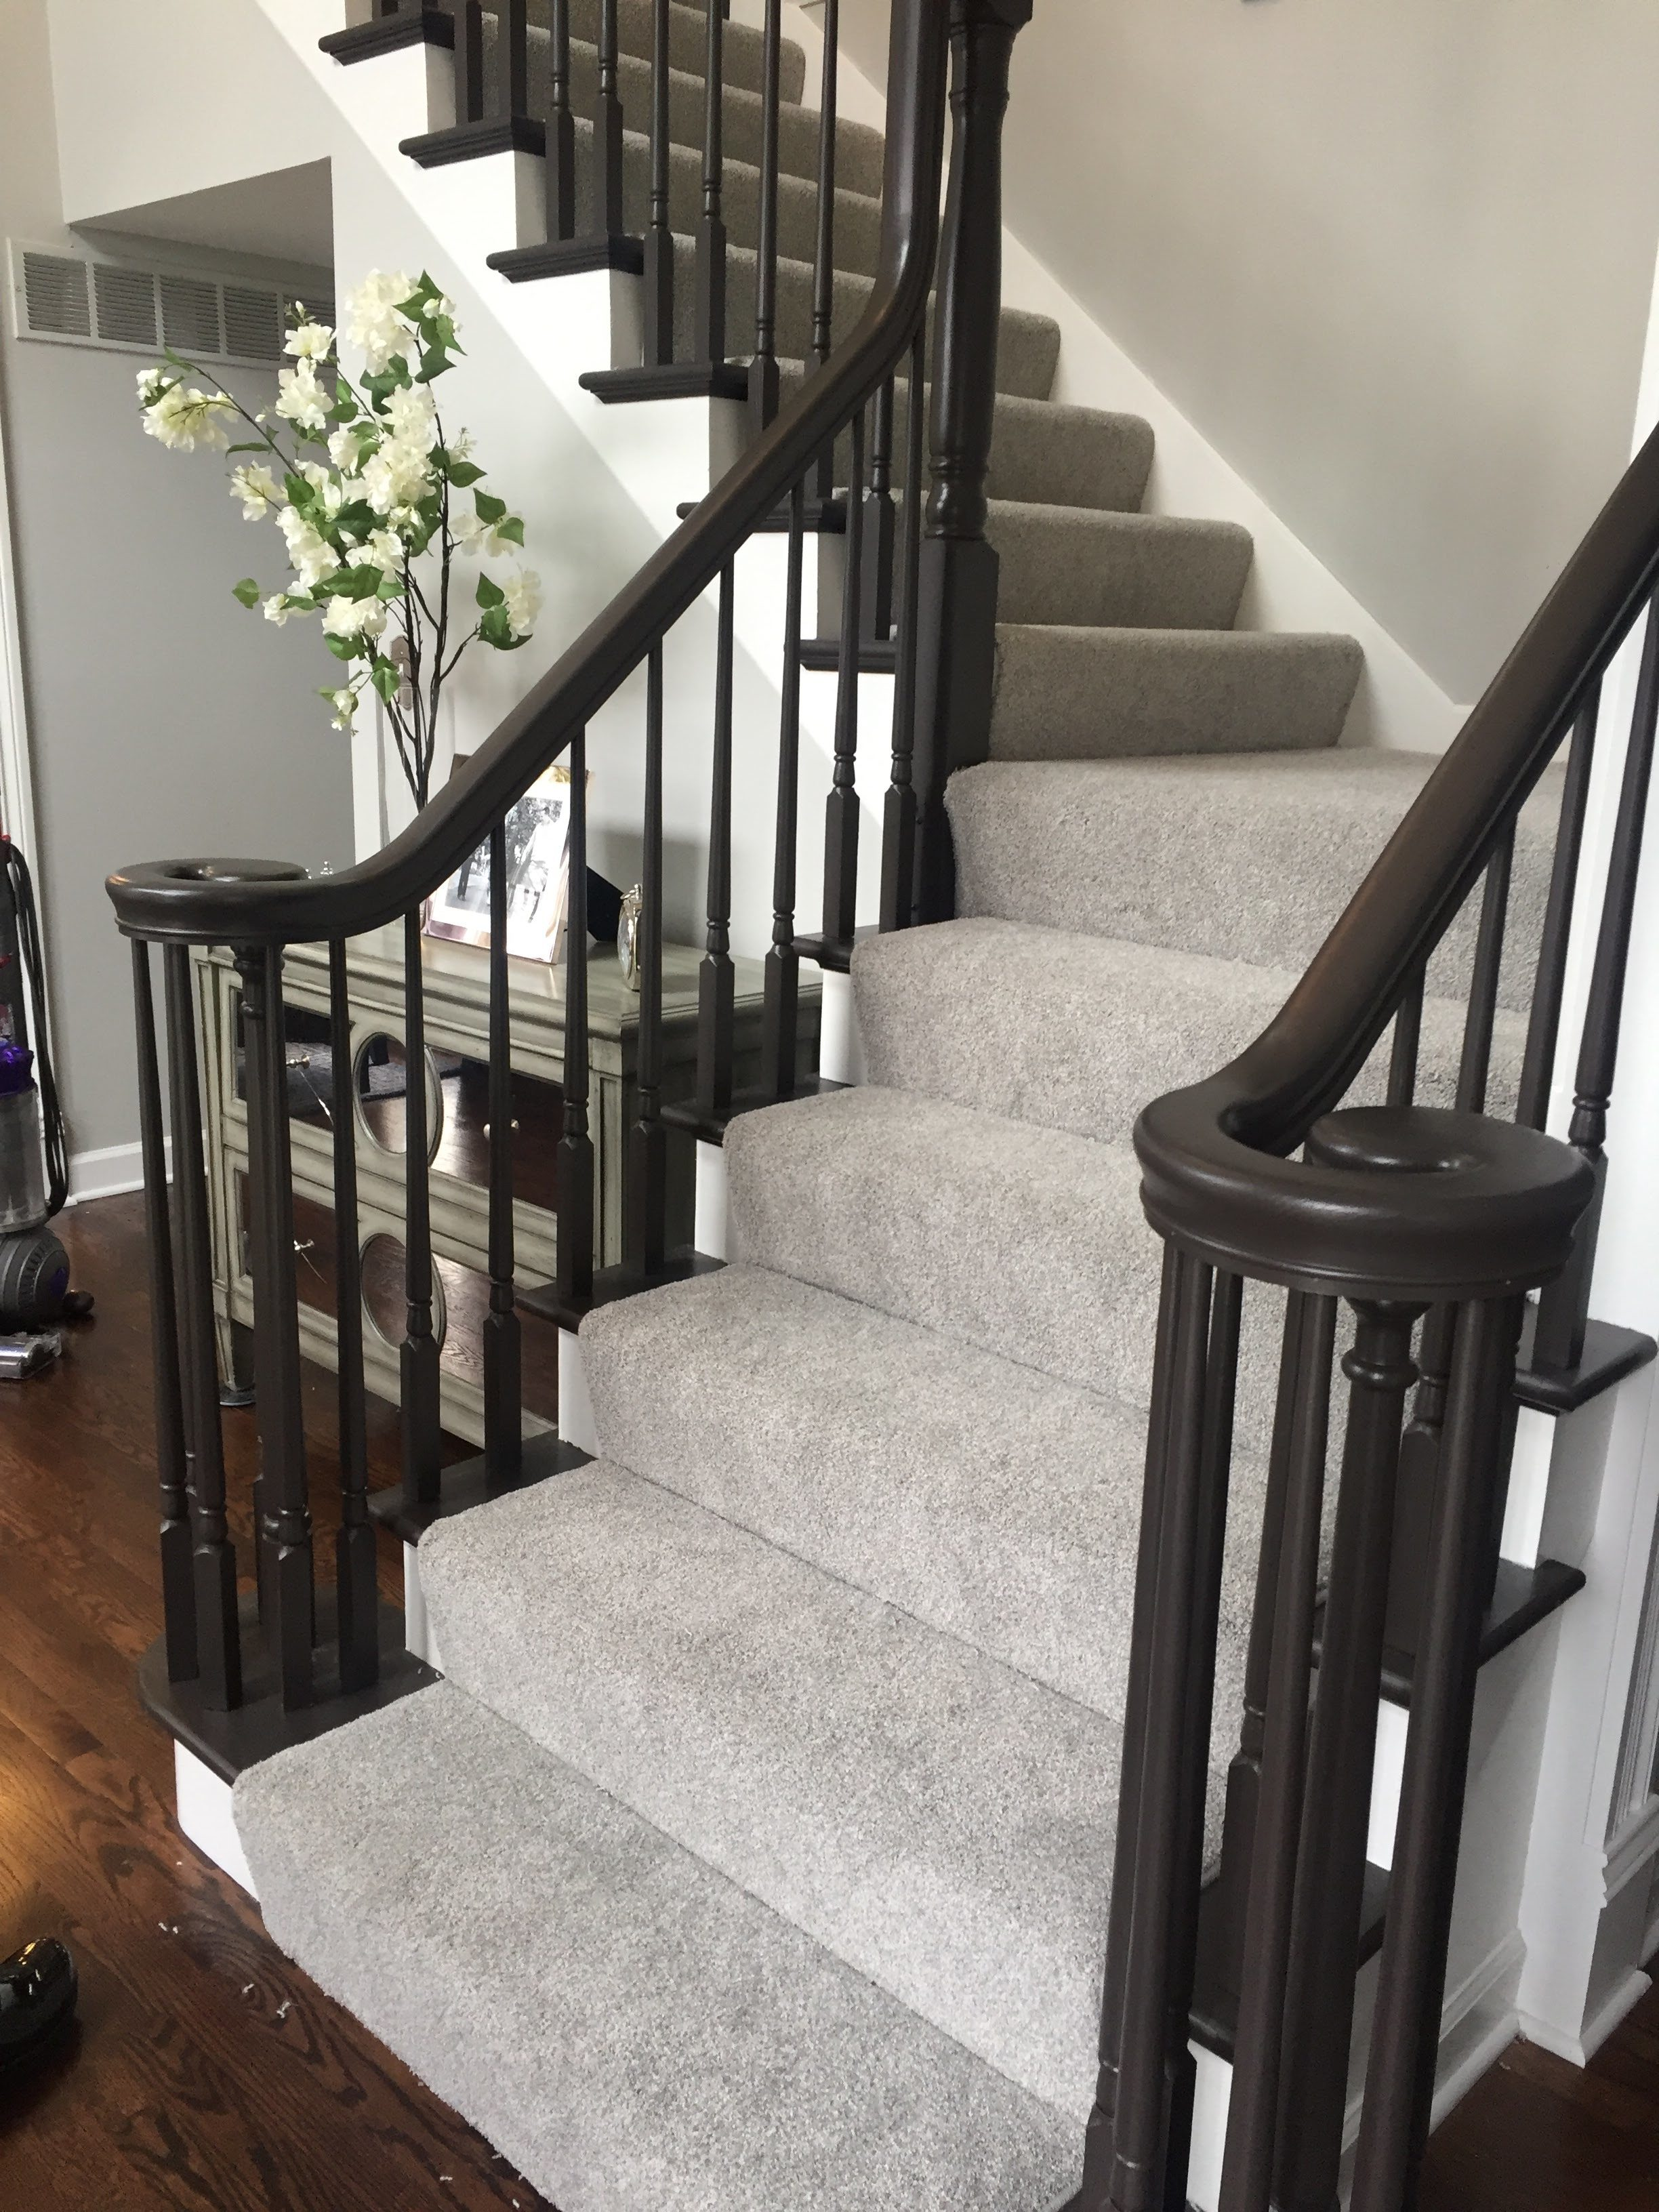 Stair carpeting in West County